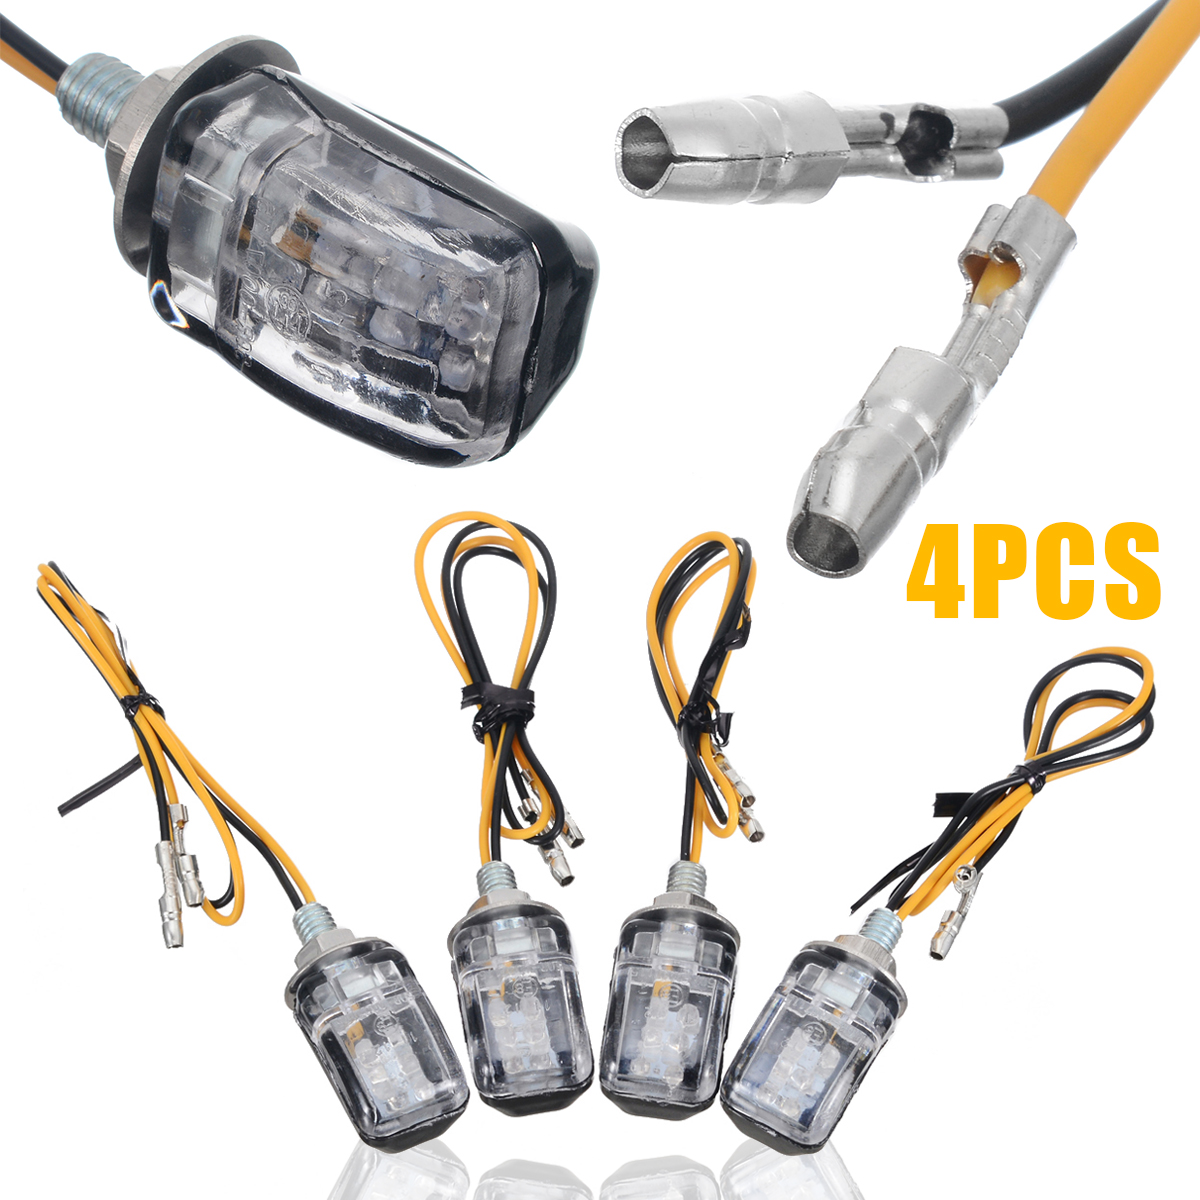 4pcs 12V Amber LED Motorcycle Dirt Bike Turn Signal Light  Mini Blinker Indicator Small Rectangular Lamp 2 Wires For Honda